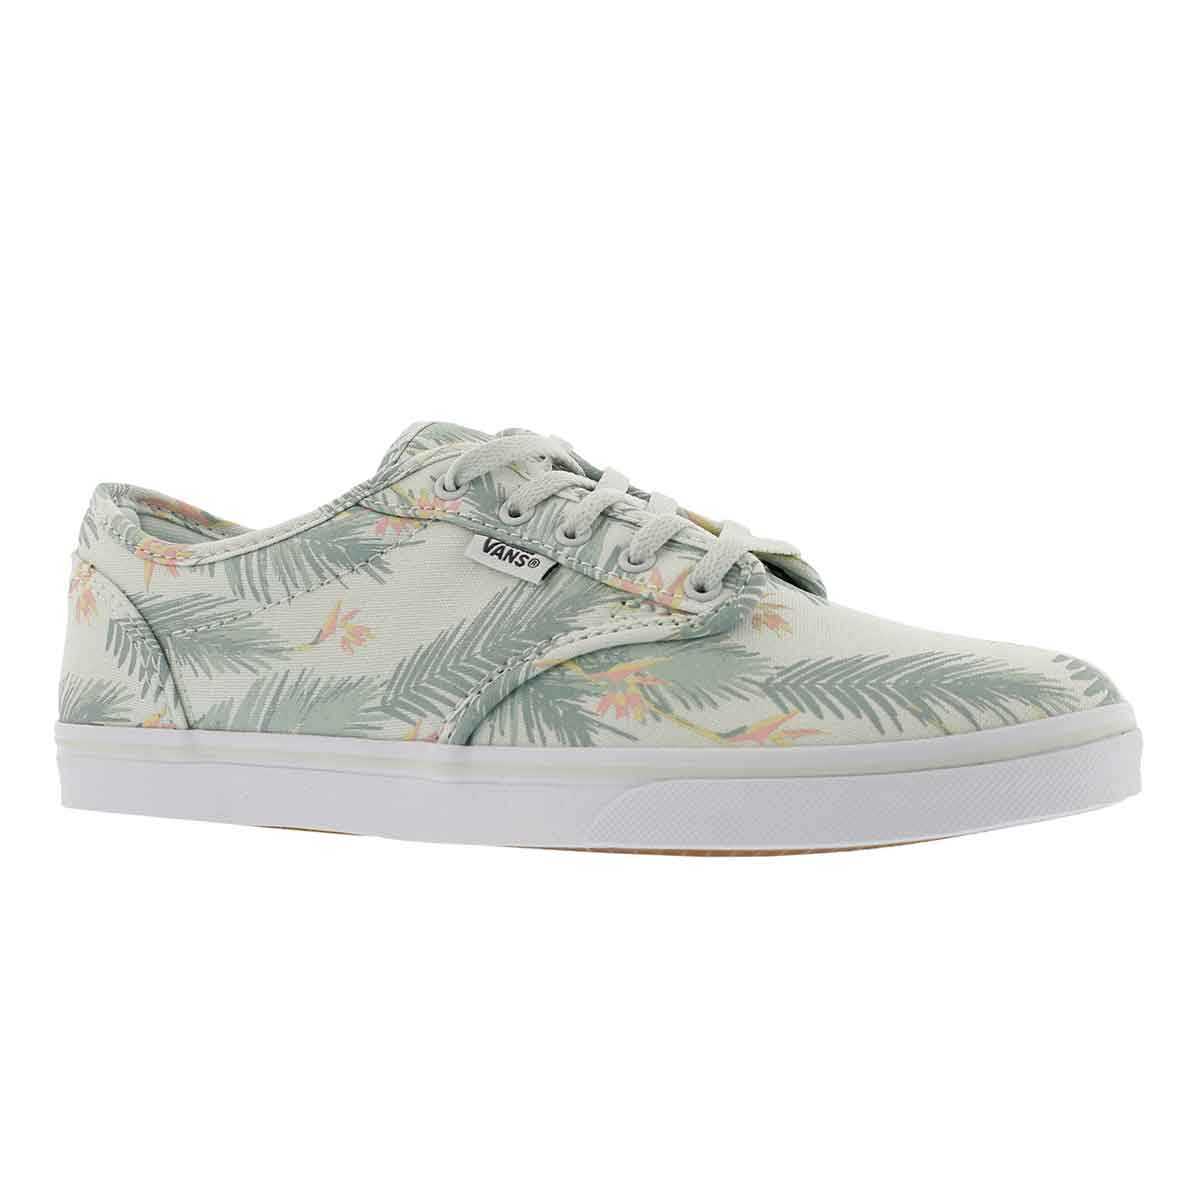 Women's ATWOOD LOW tropical grn laceup sneakers